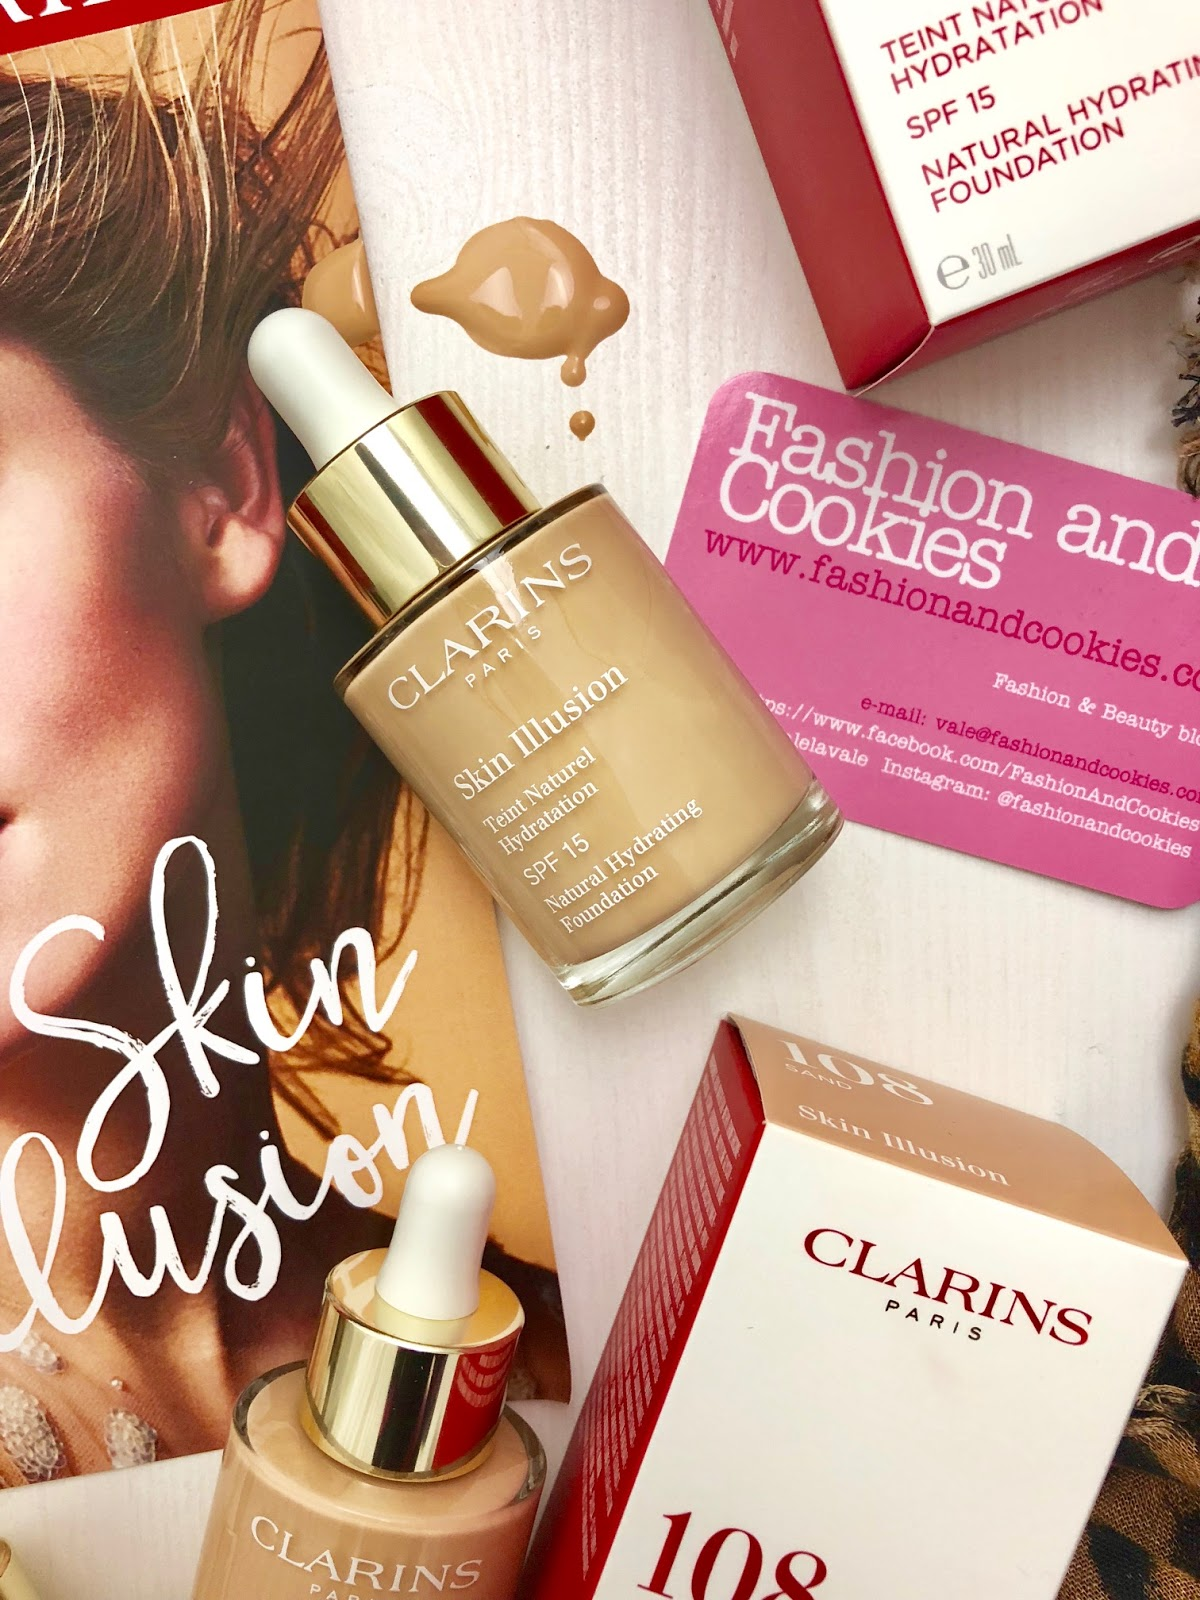 Skin Illusion di Clarins: nuovo fondotinta idratante effetto naturale su Fashion and Cookies beauty blog, beauty blogger